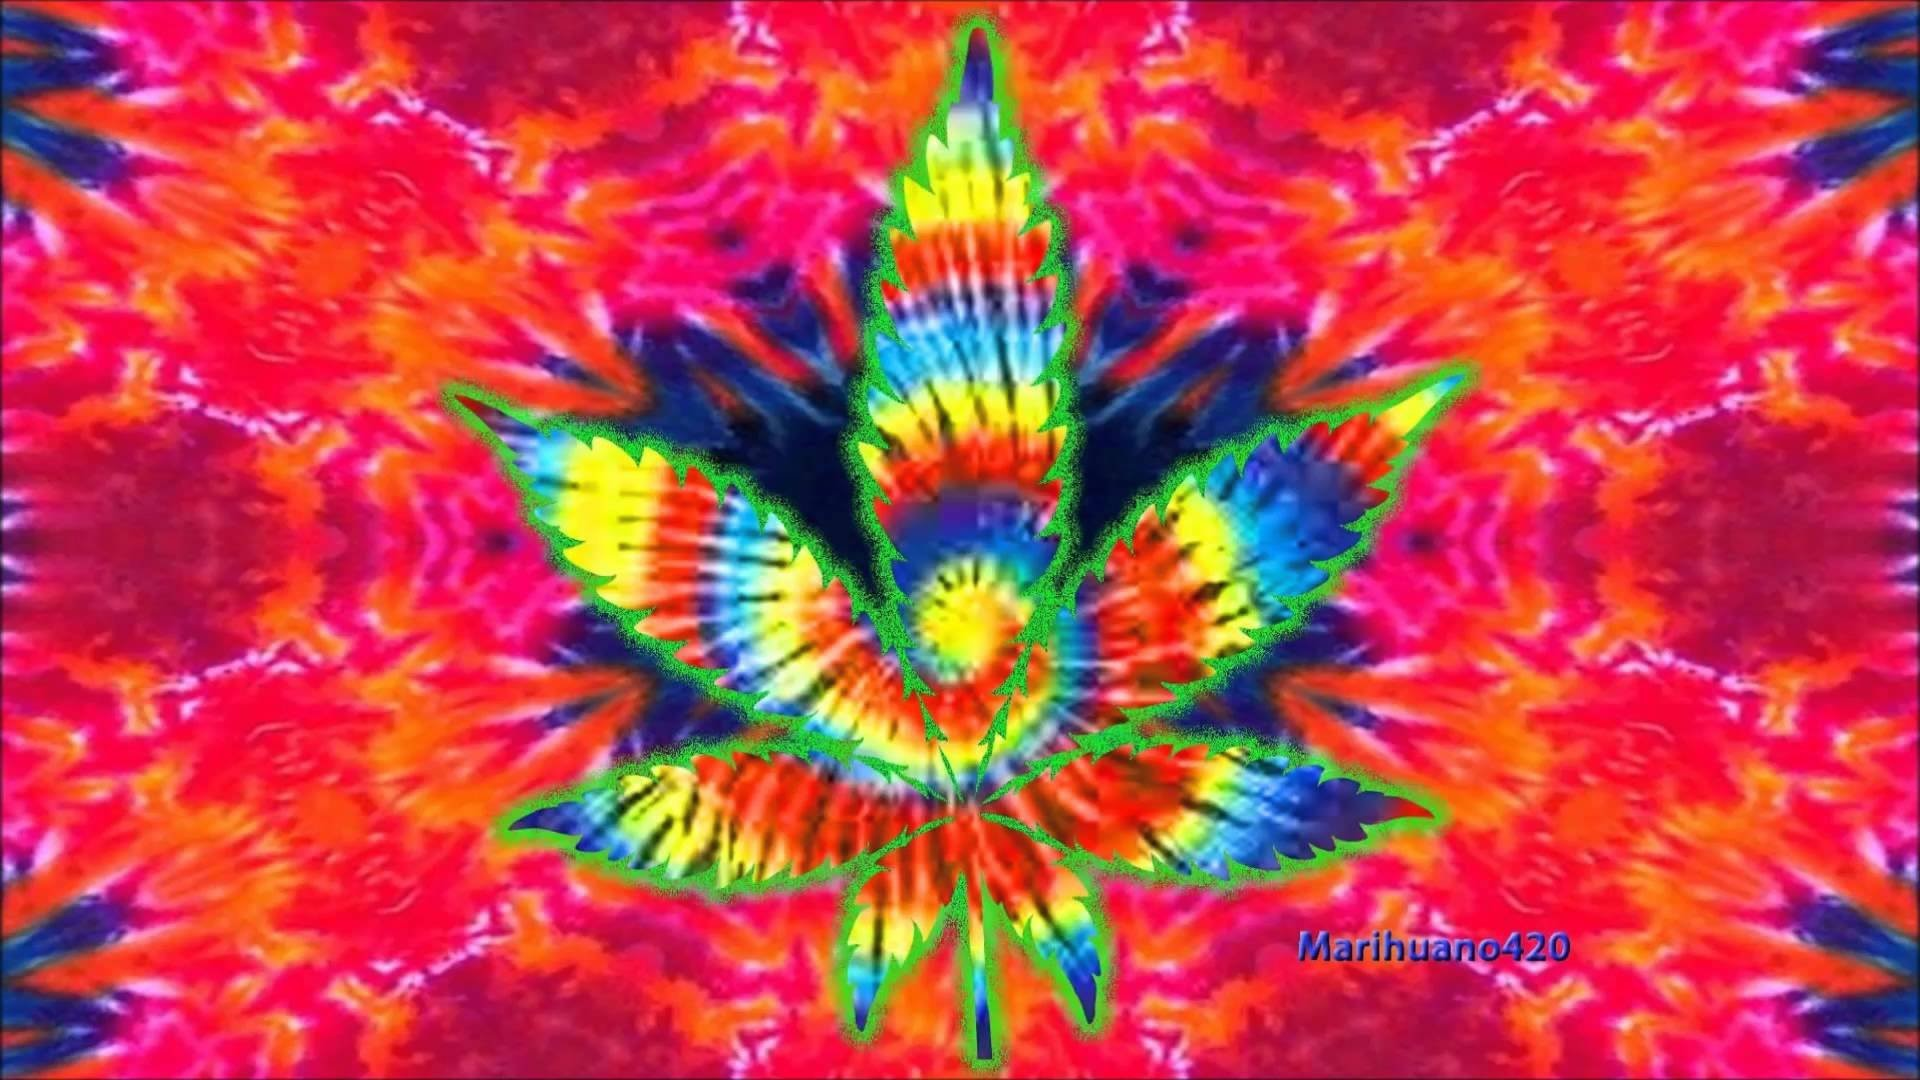 1920x1080 Artistic - Marijuana Artistic Psychedelic Colors Wallpaper